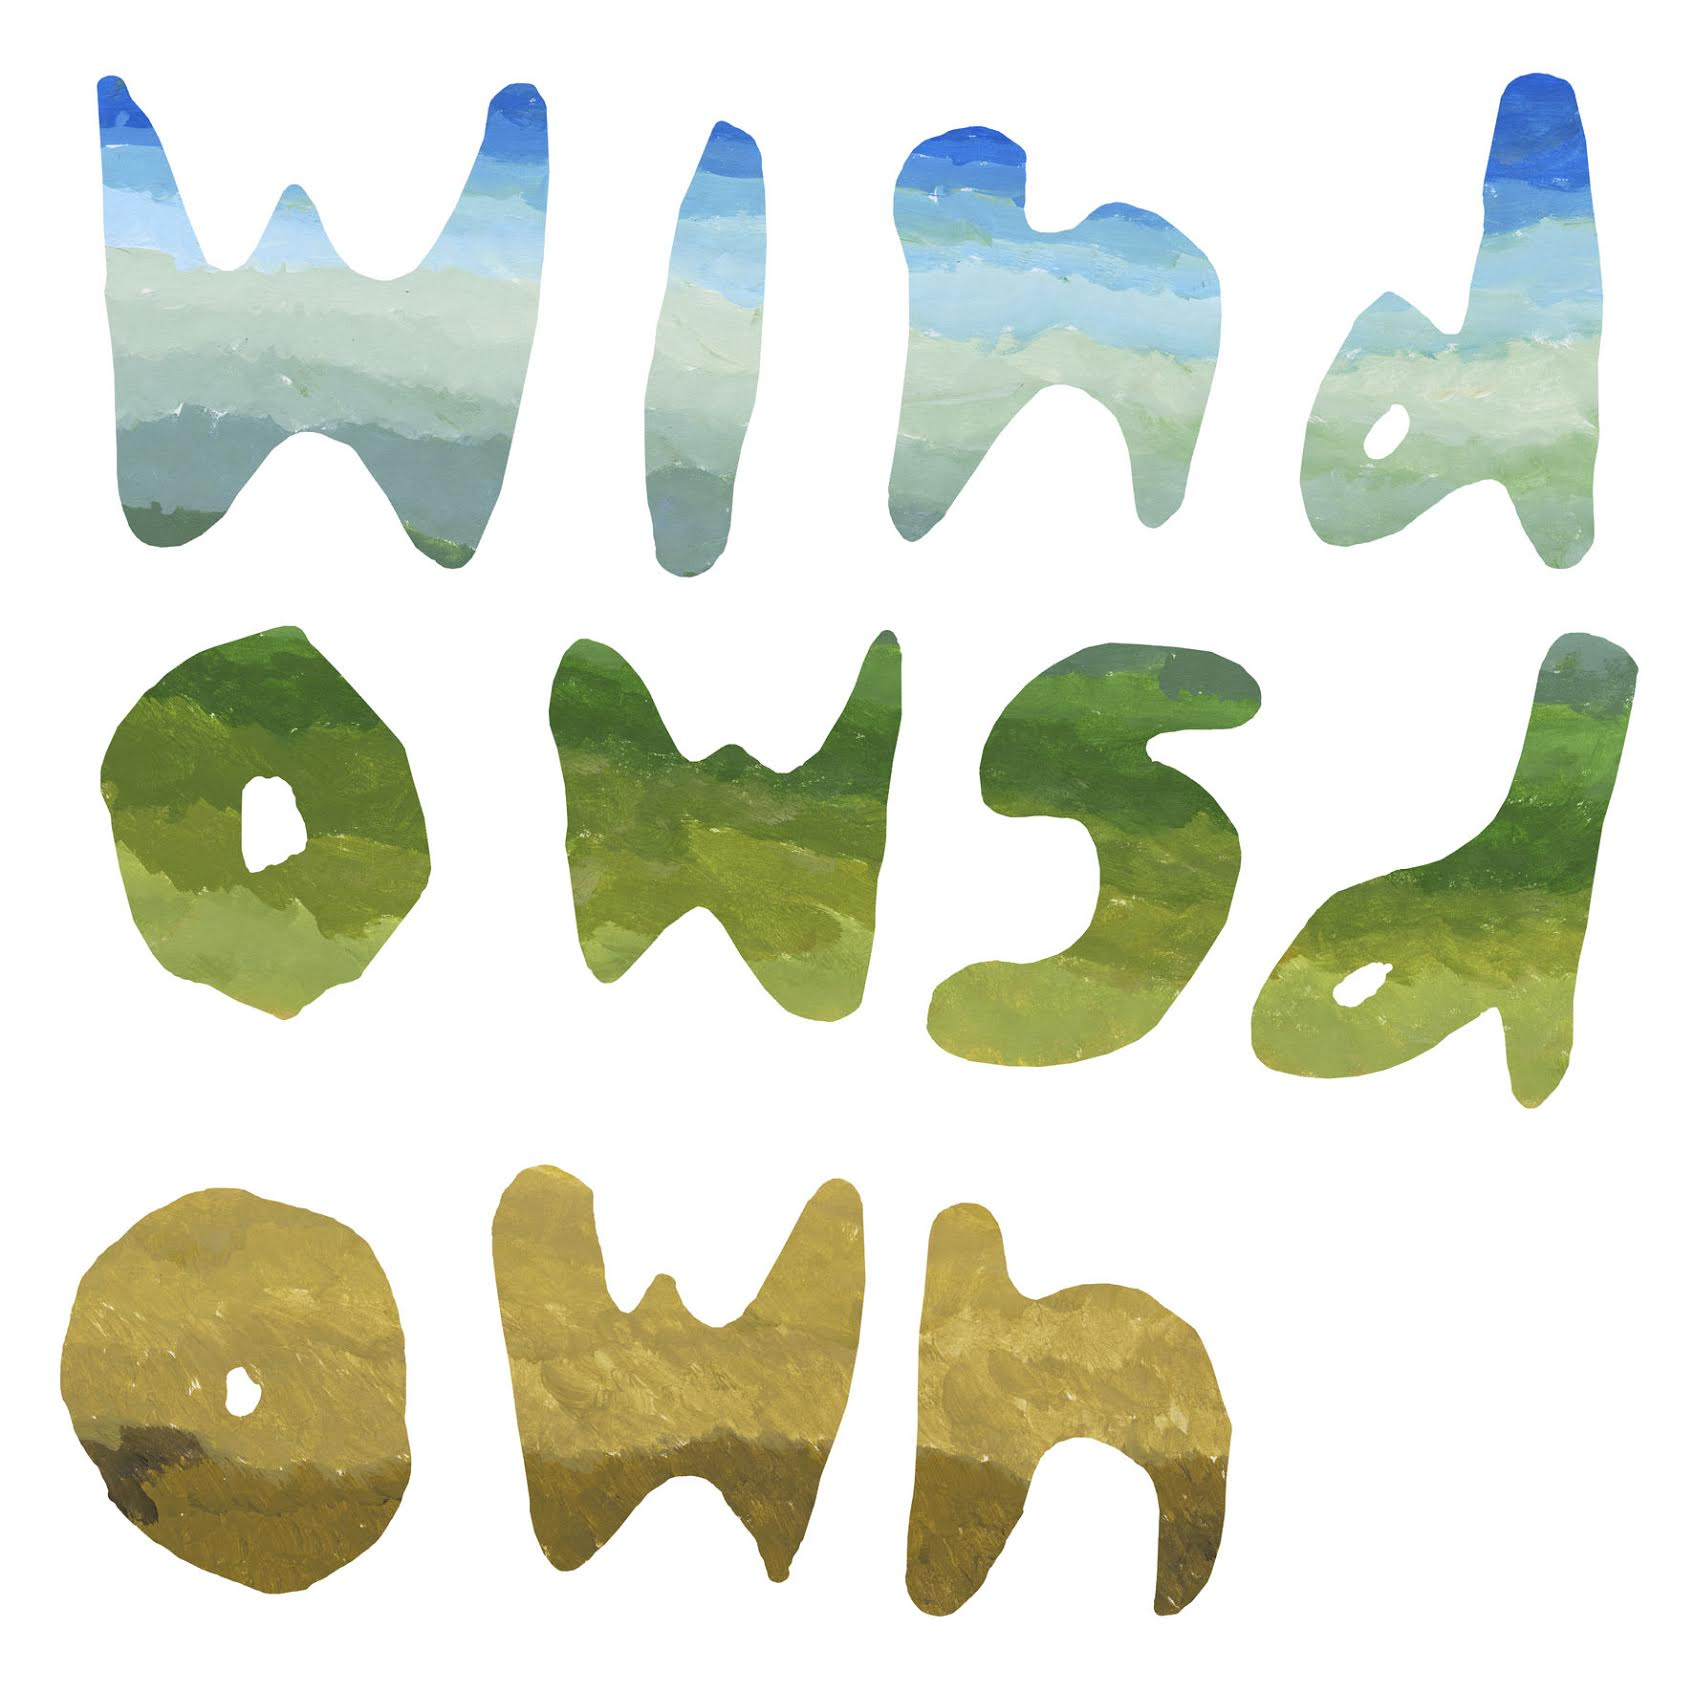 Windows Down, 2014